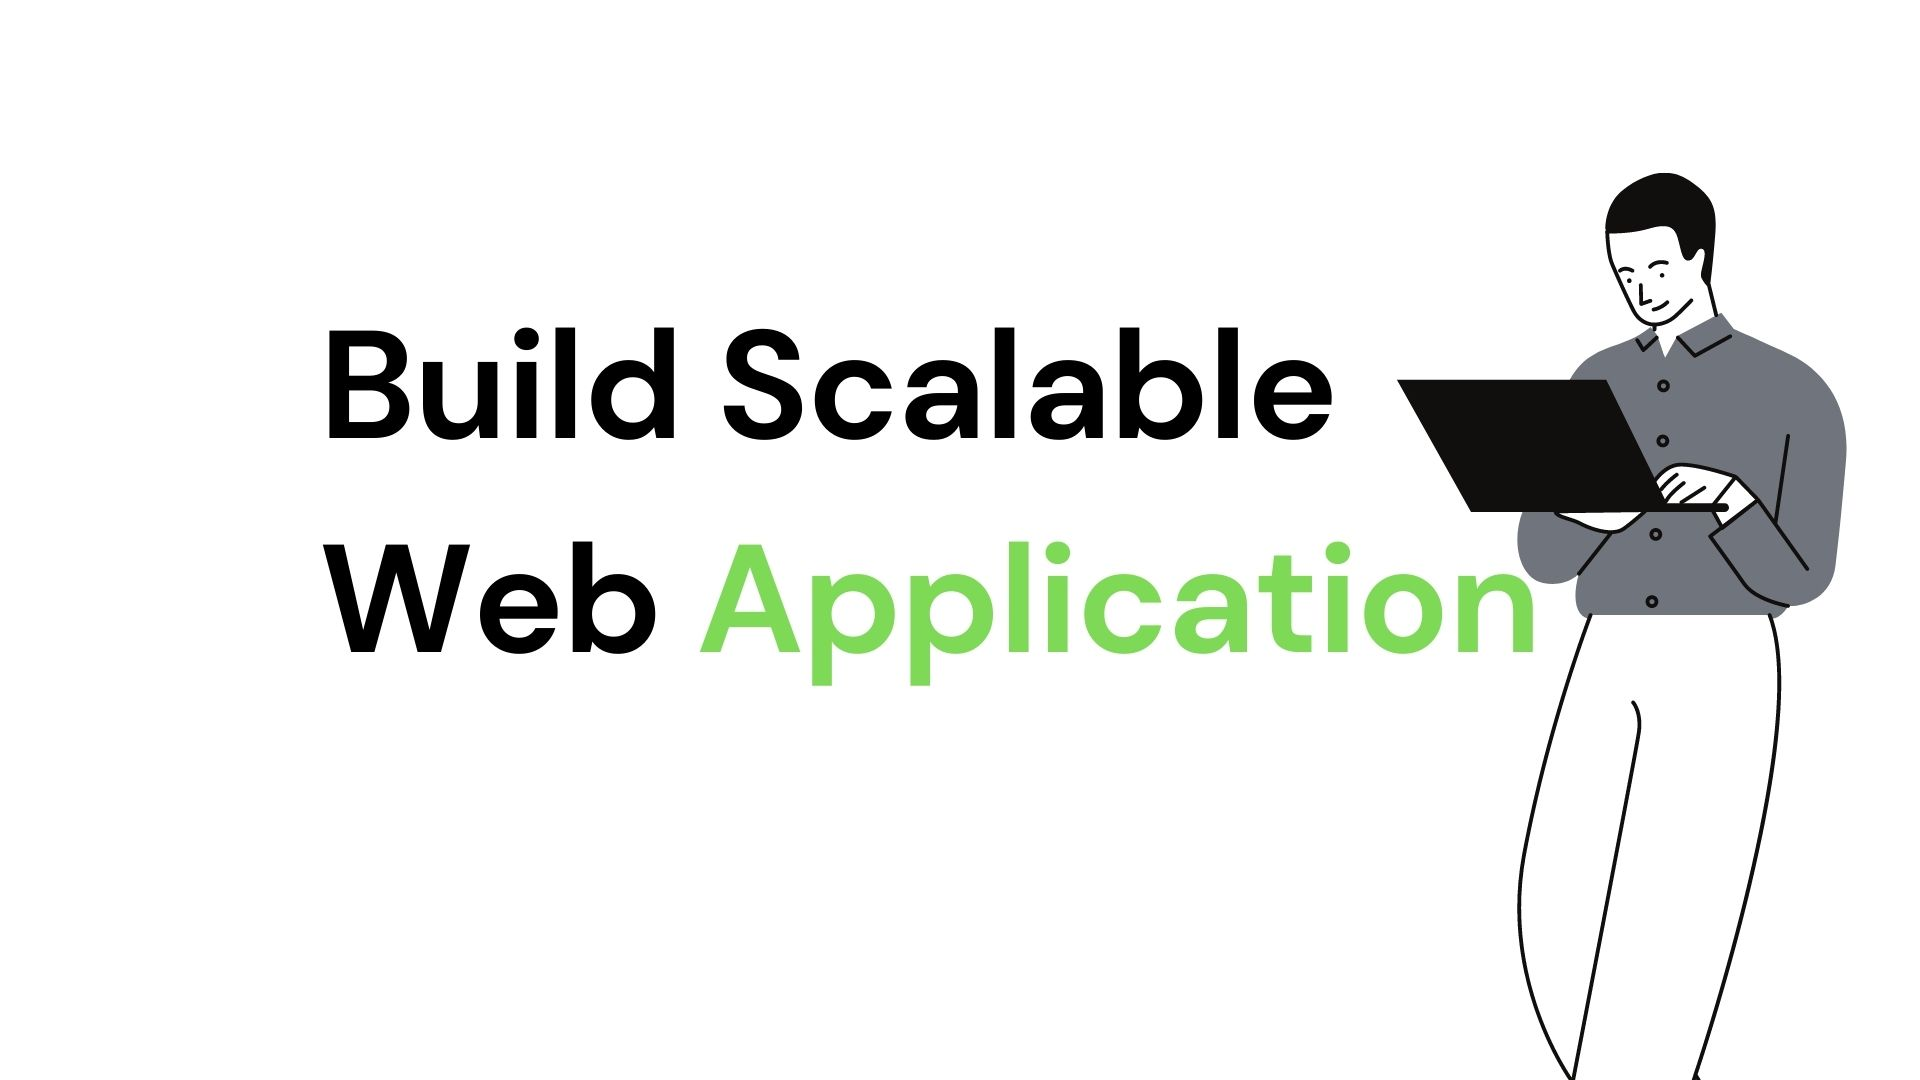 how to build scalable Web Application